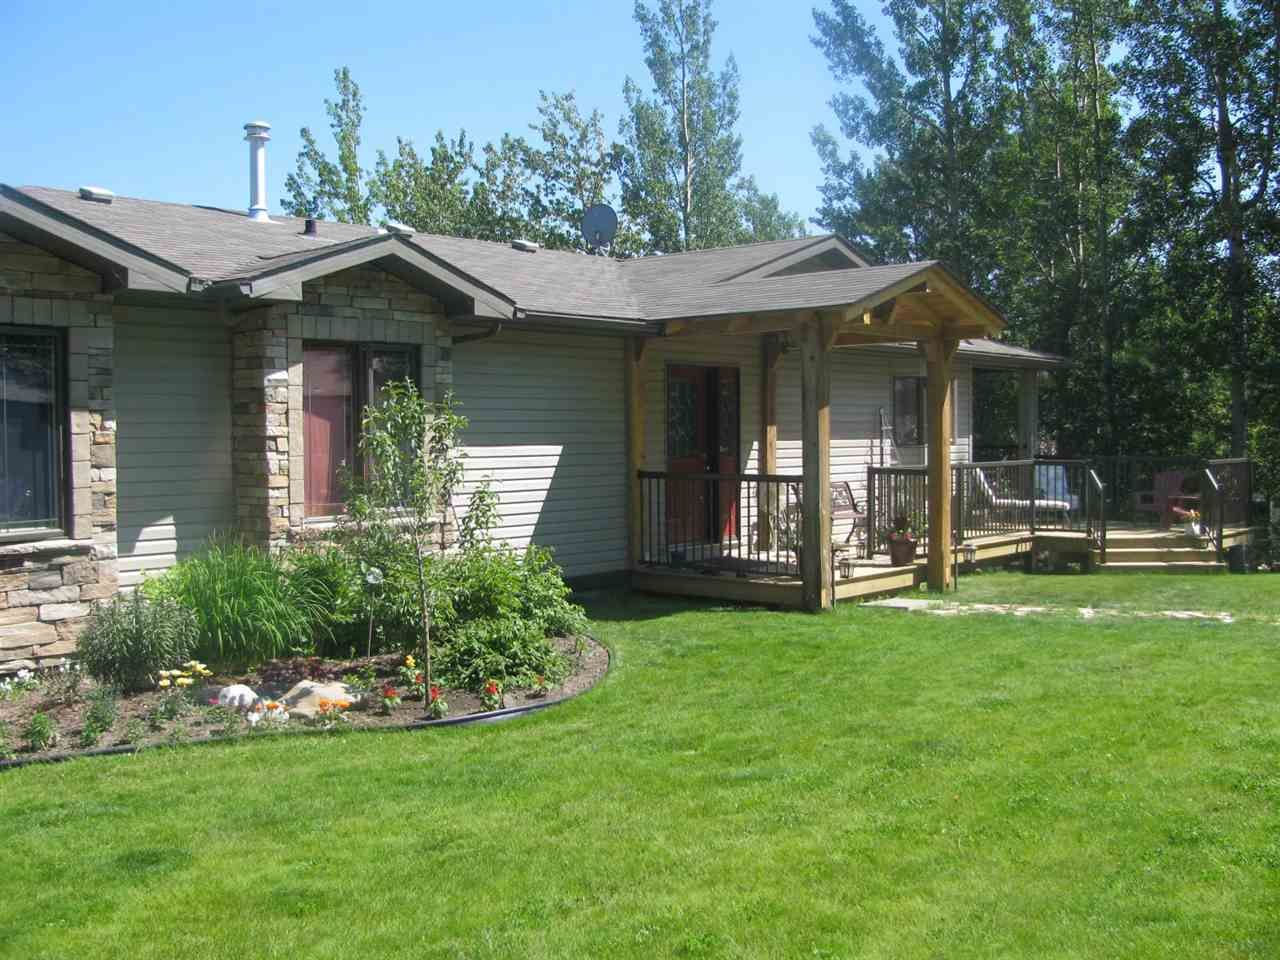 Photo 19: Photos: 13759 GOLF COURSE Road: Charlie Lake Manufactured Home for sale (Fort St. John (Zone 60))  : MLS®# R2453494